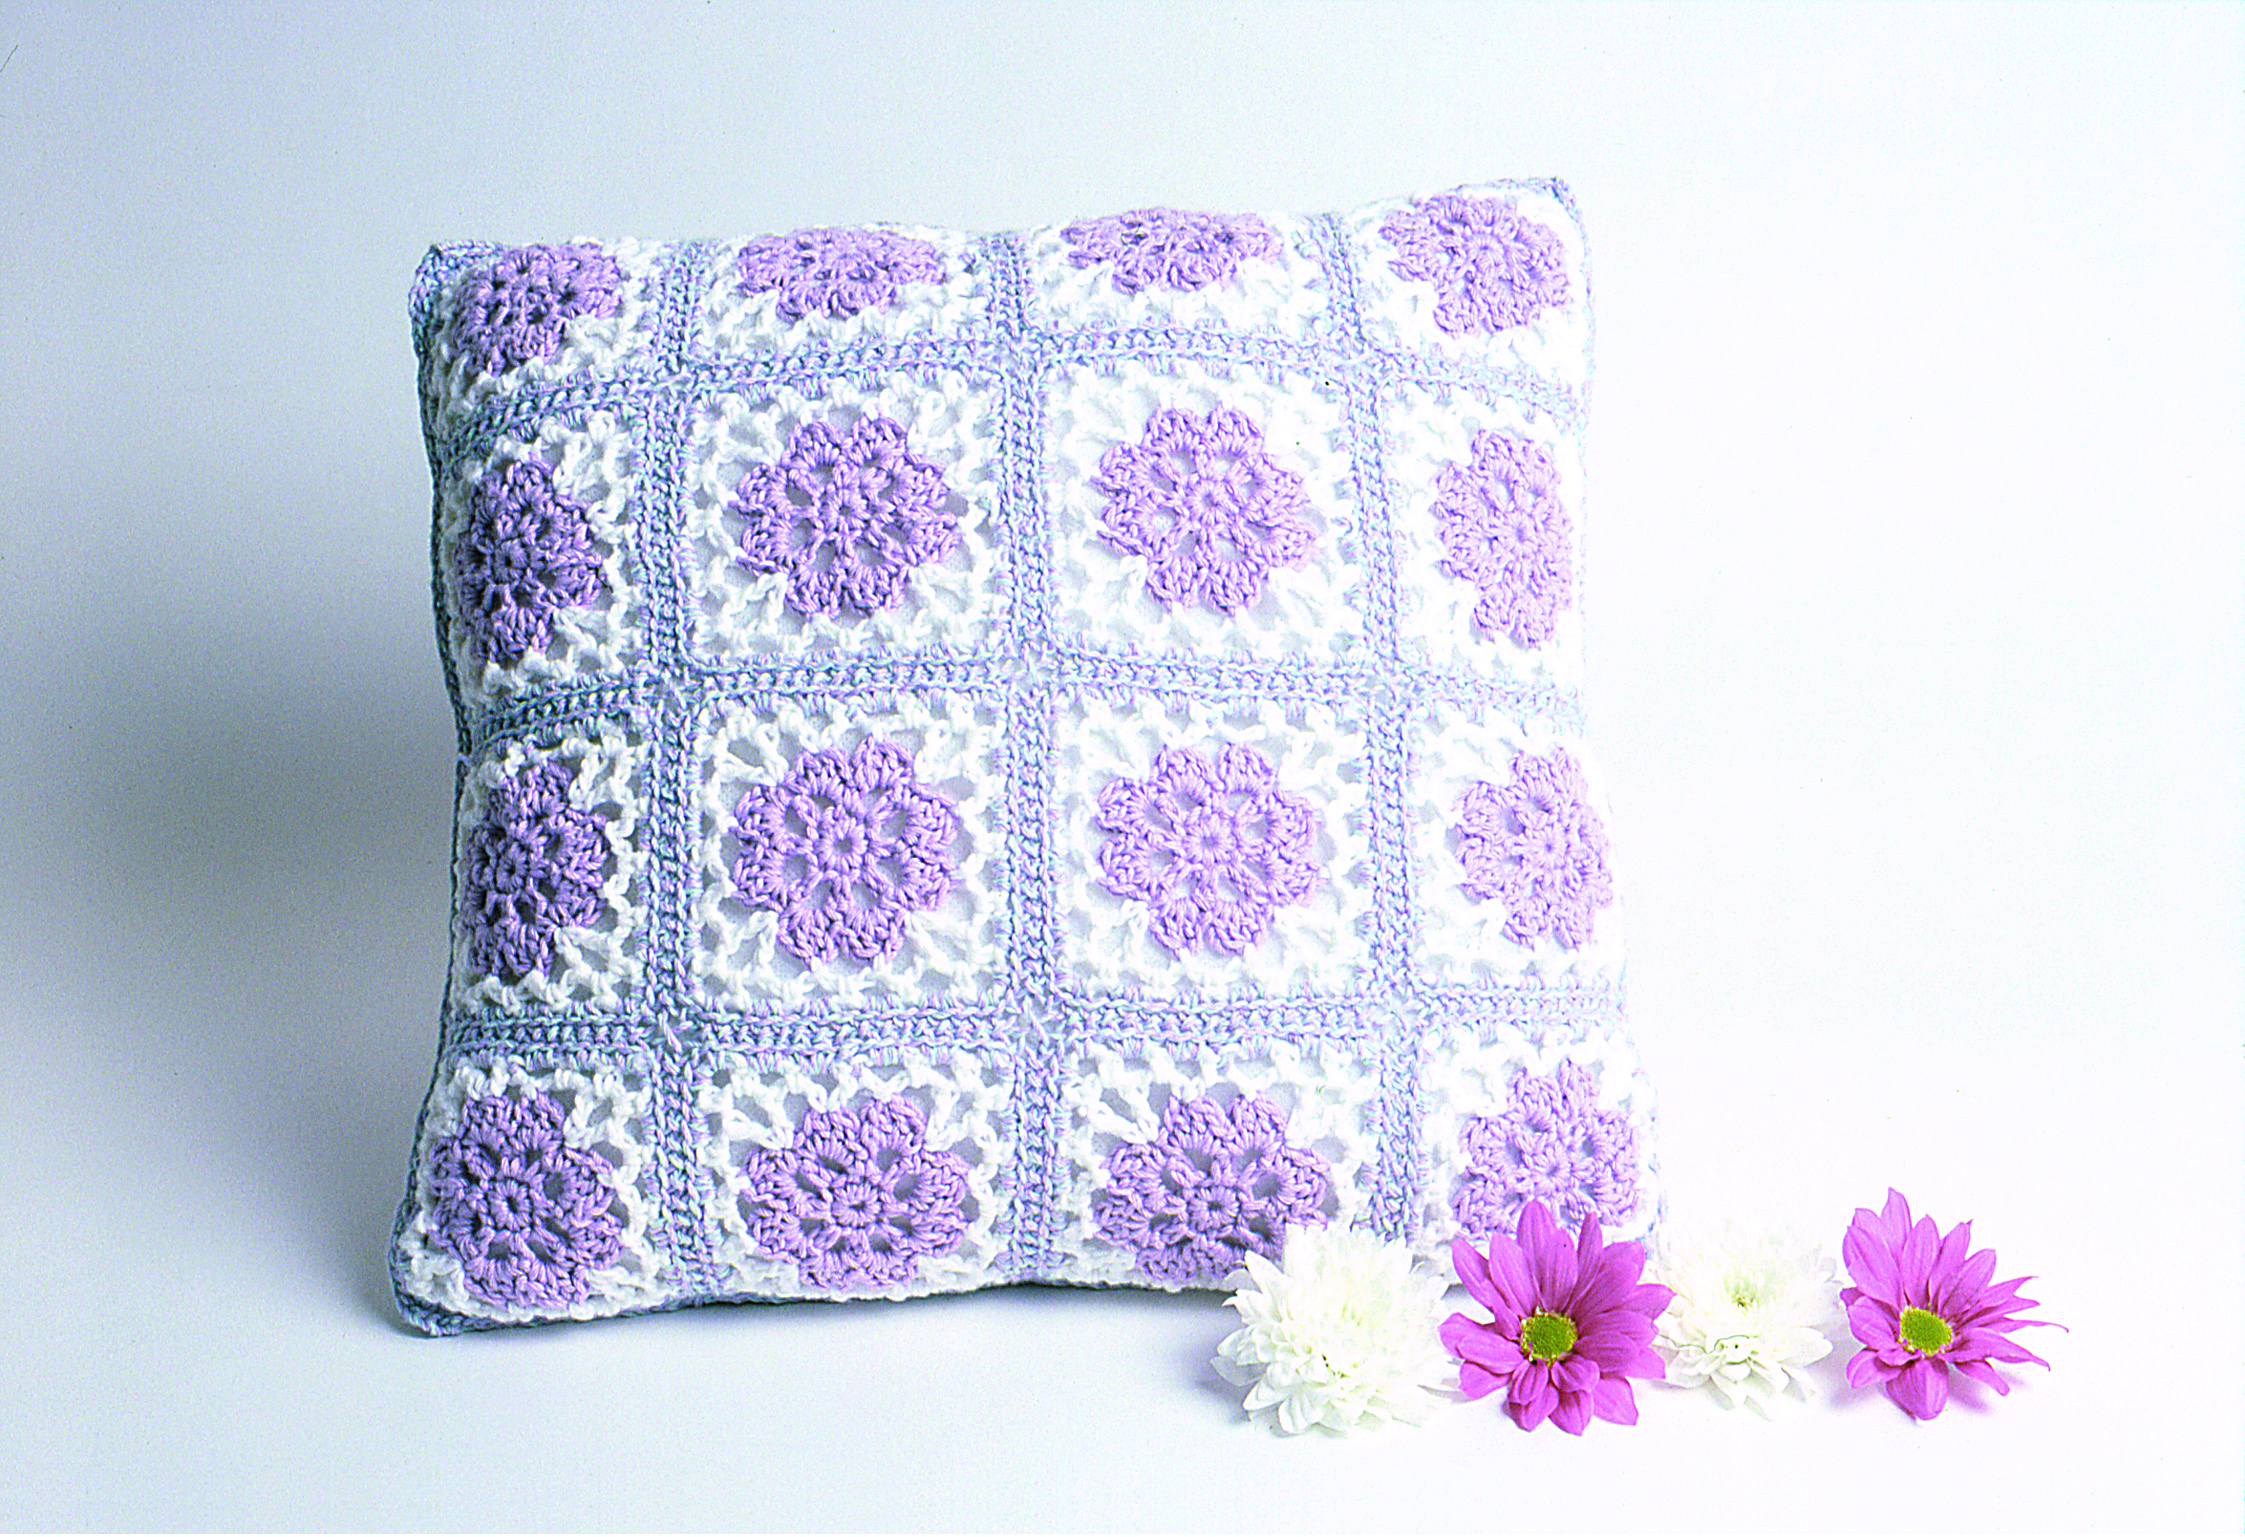 Free crochet patterns pottage publishing flower cushion free crochet pattern bankloansurffo Choice Image